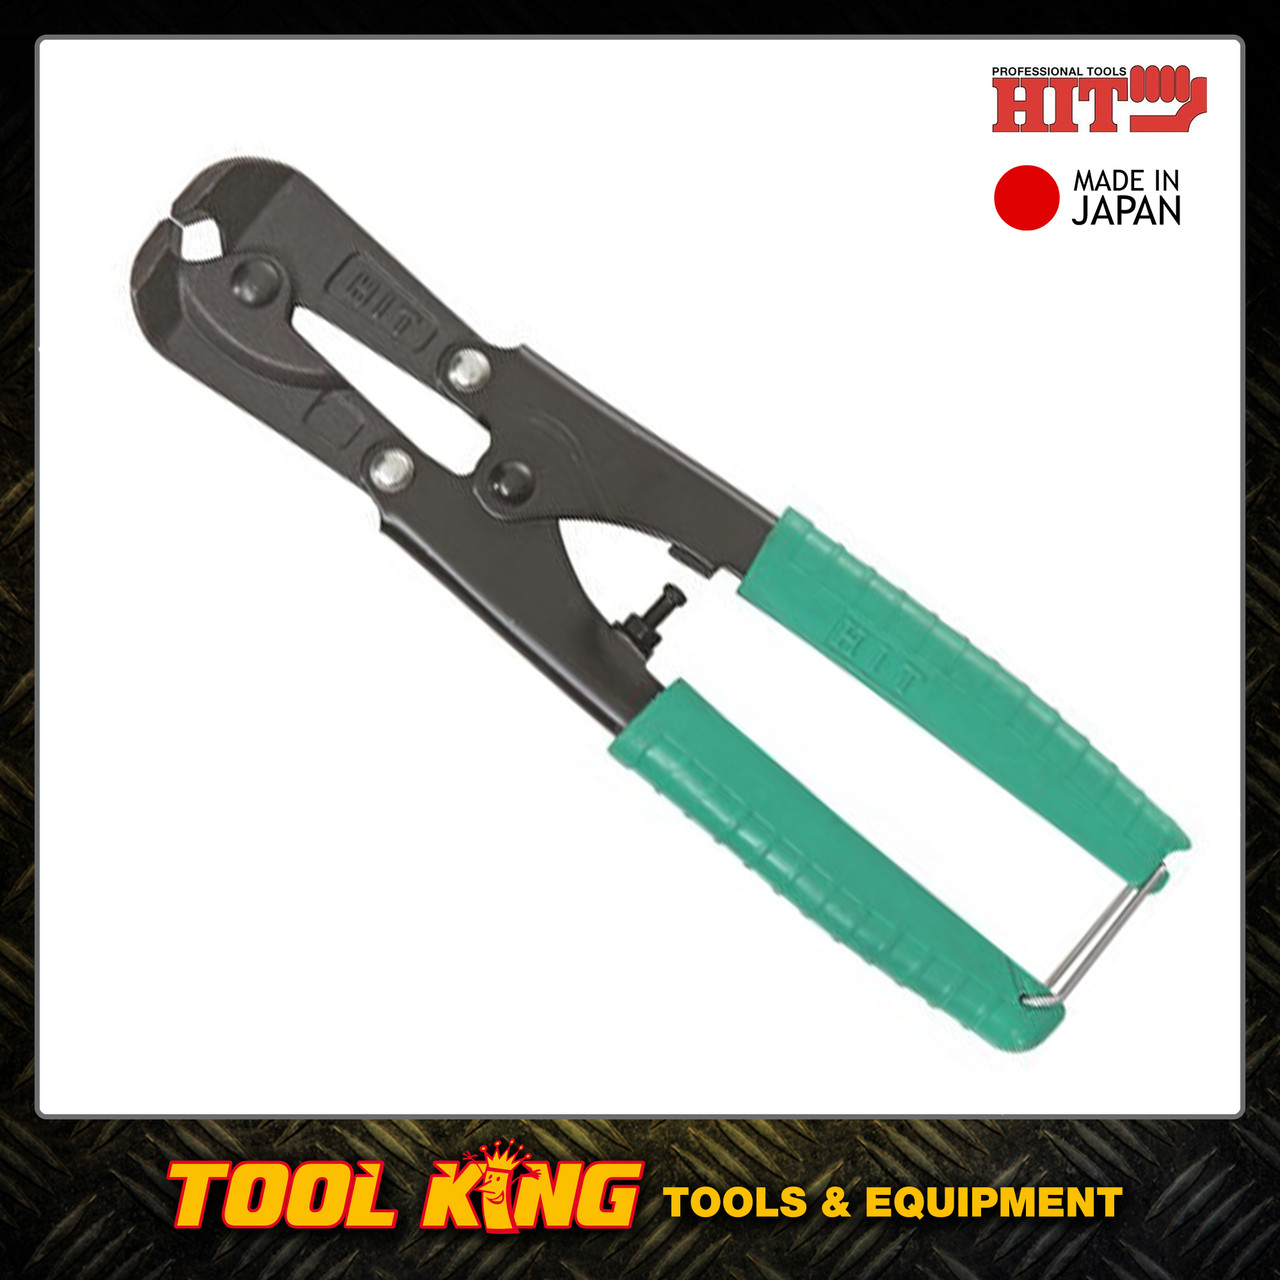 End cutting nippers 200mm HIT Made in Japan